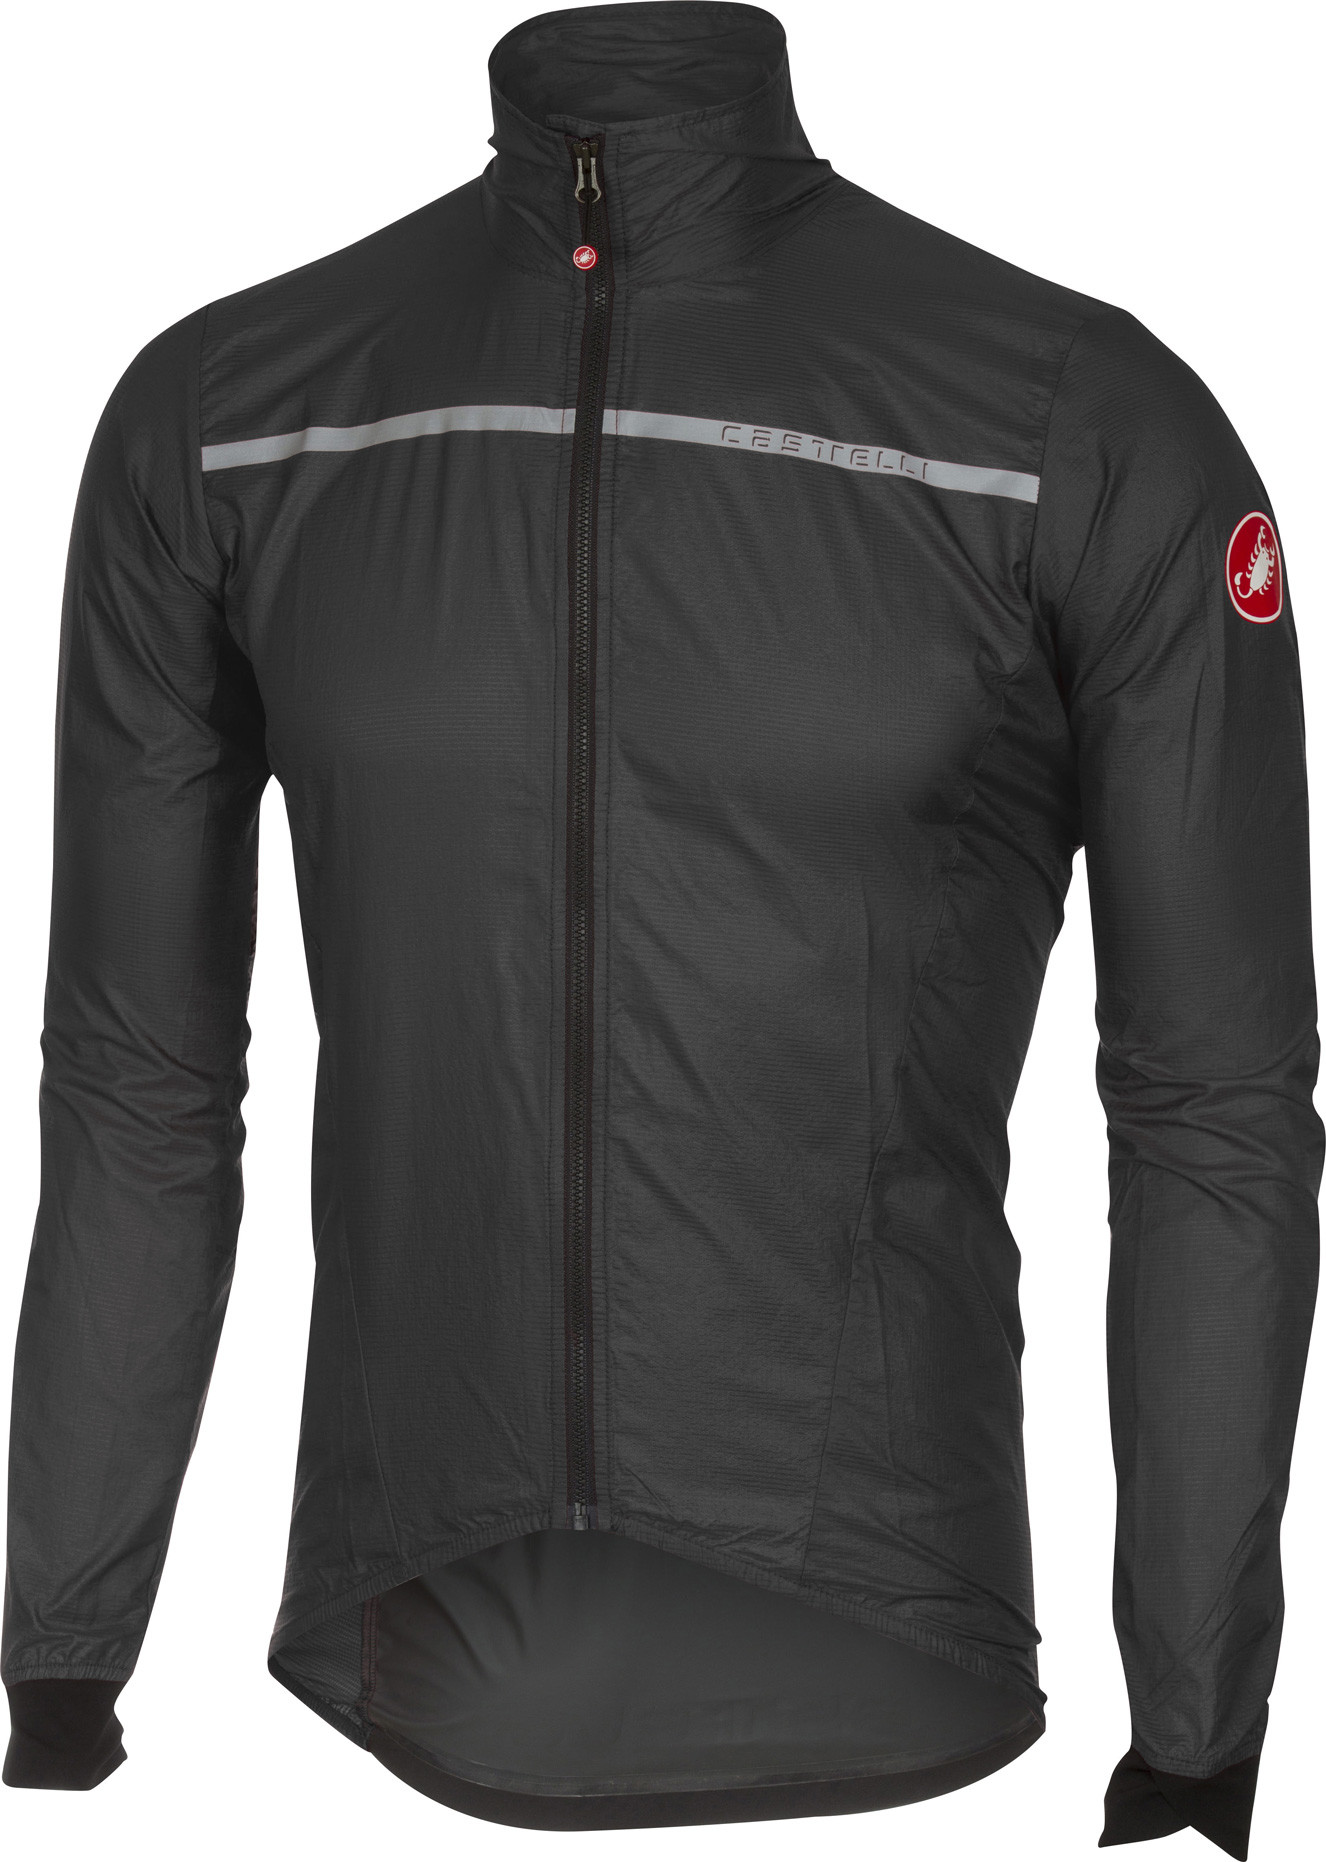 Castelli kurtka kolarska męska Superleggera Jacket anthracite/yellow XXL